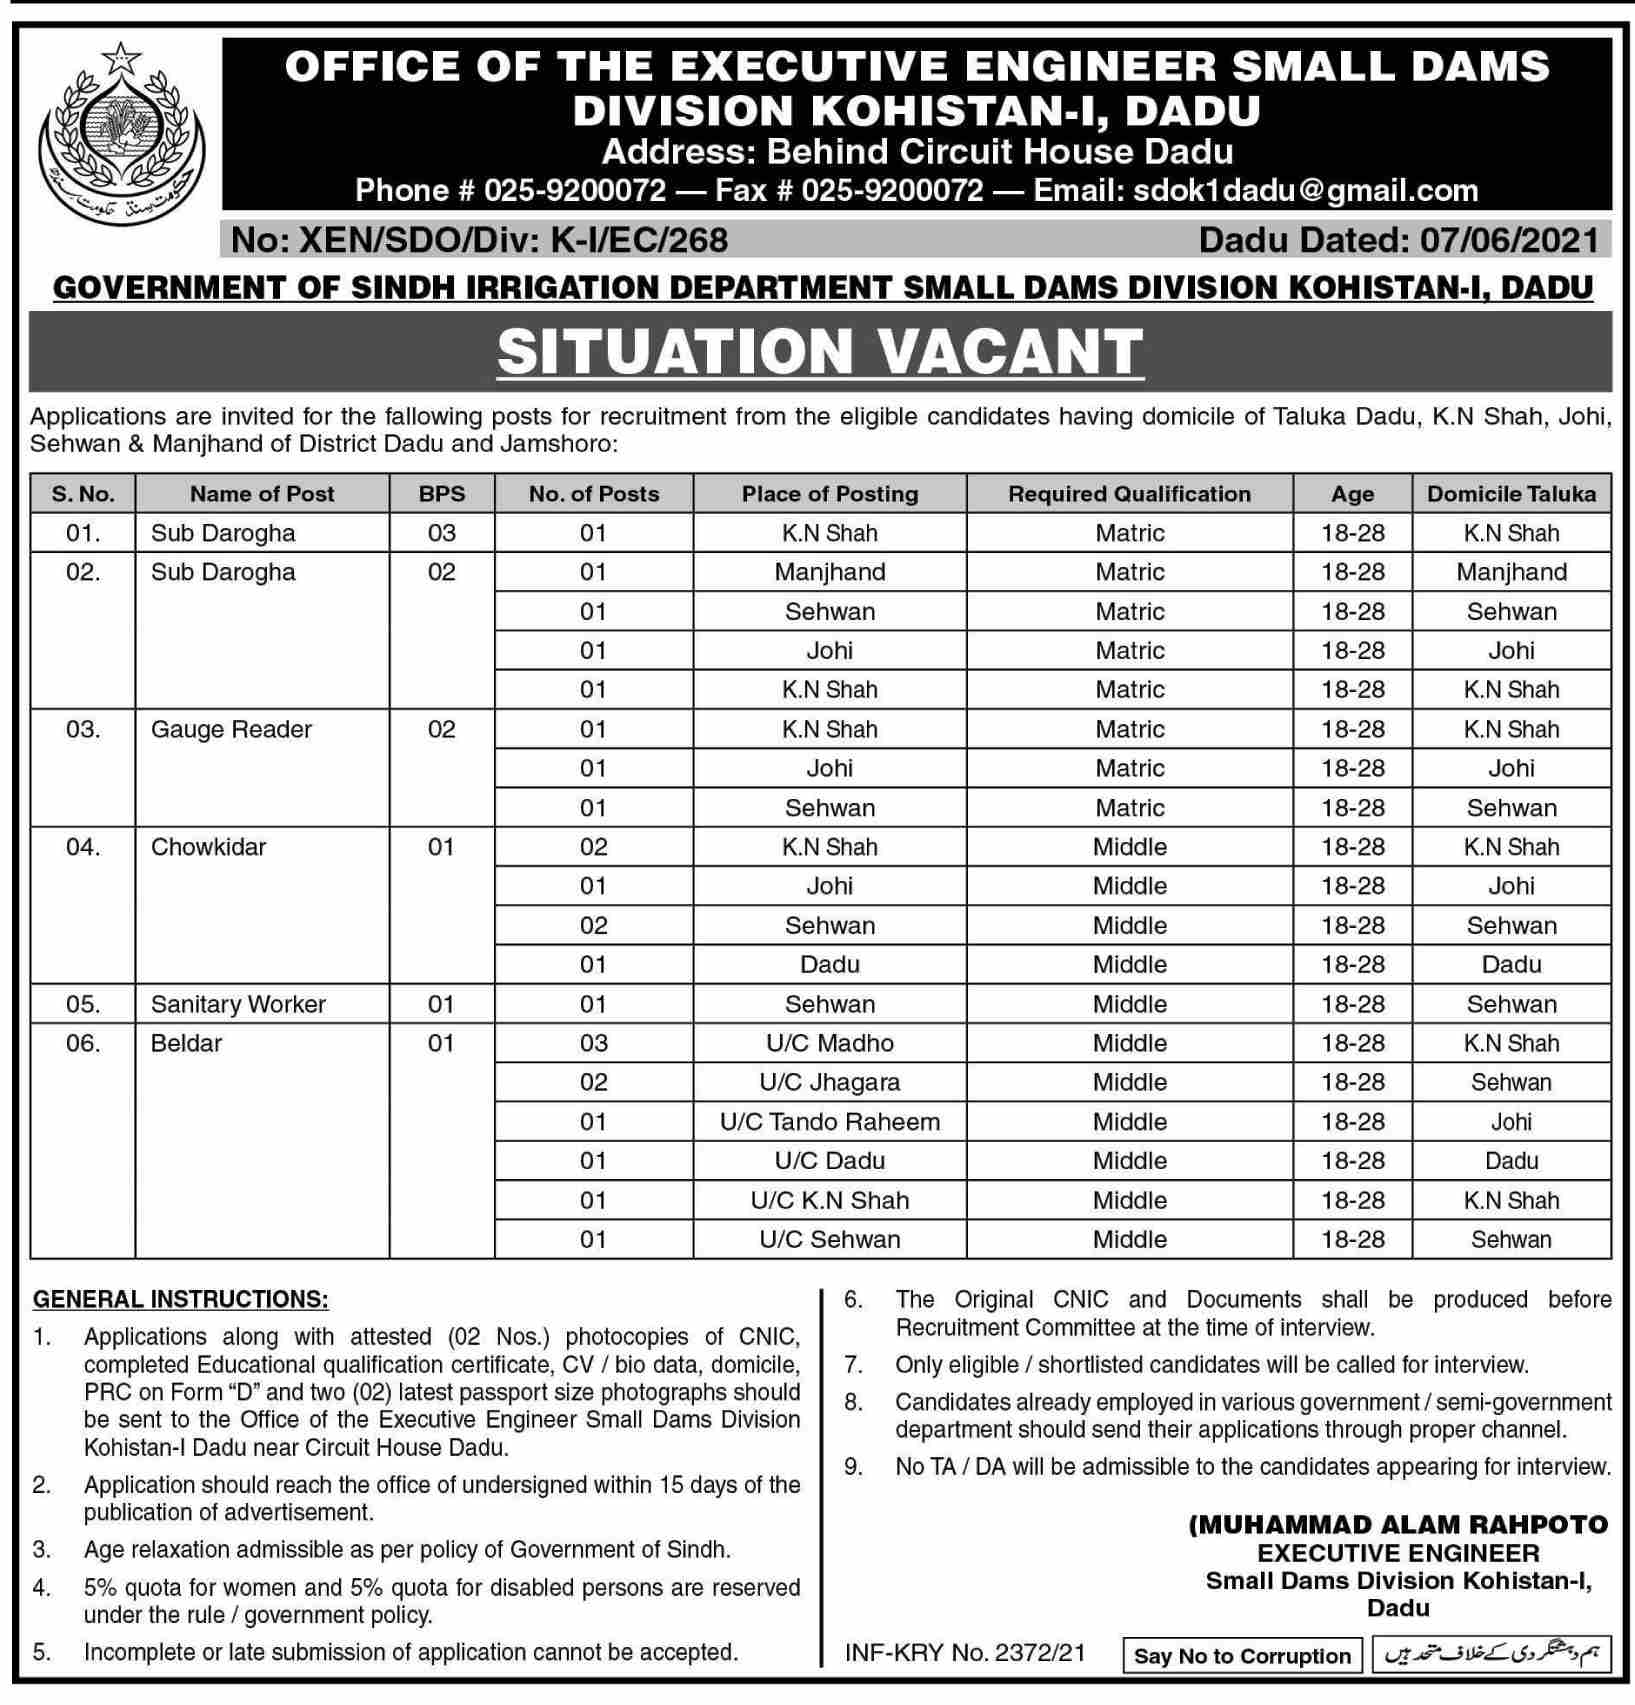 Executive Engineer Office Small Dams Division Dadu Jobs 2021 in Pakistan